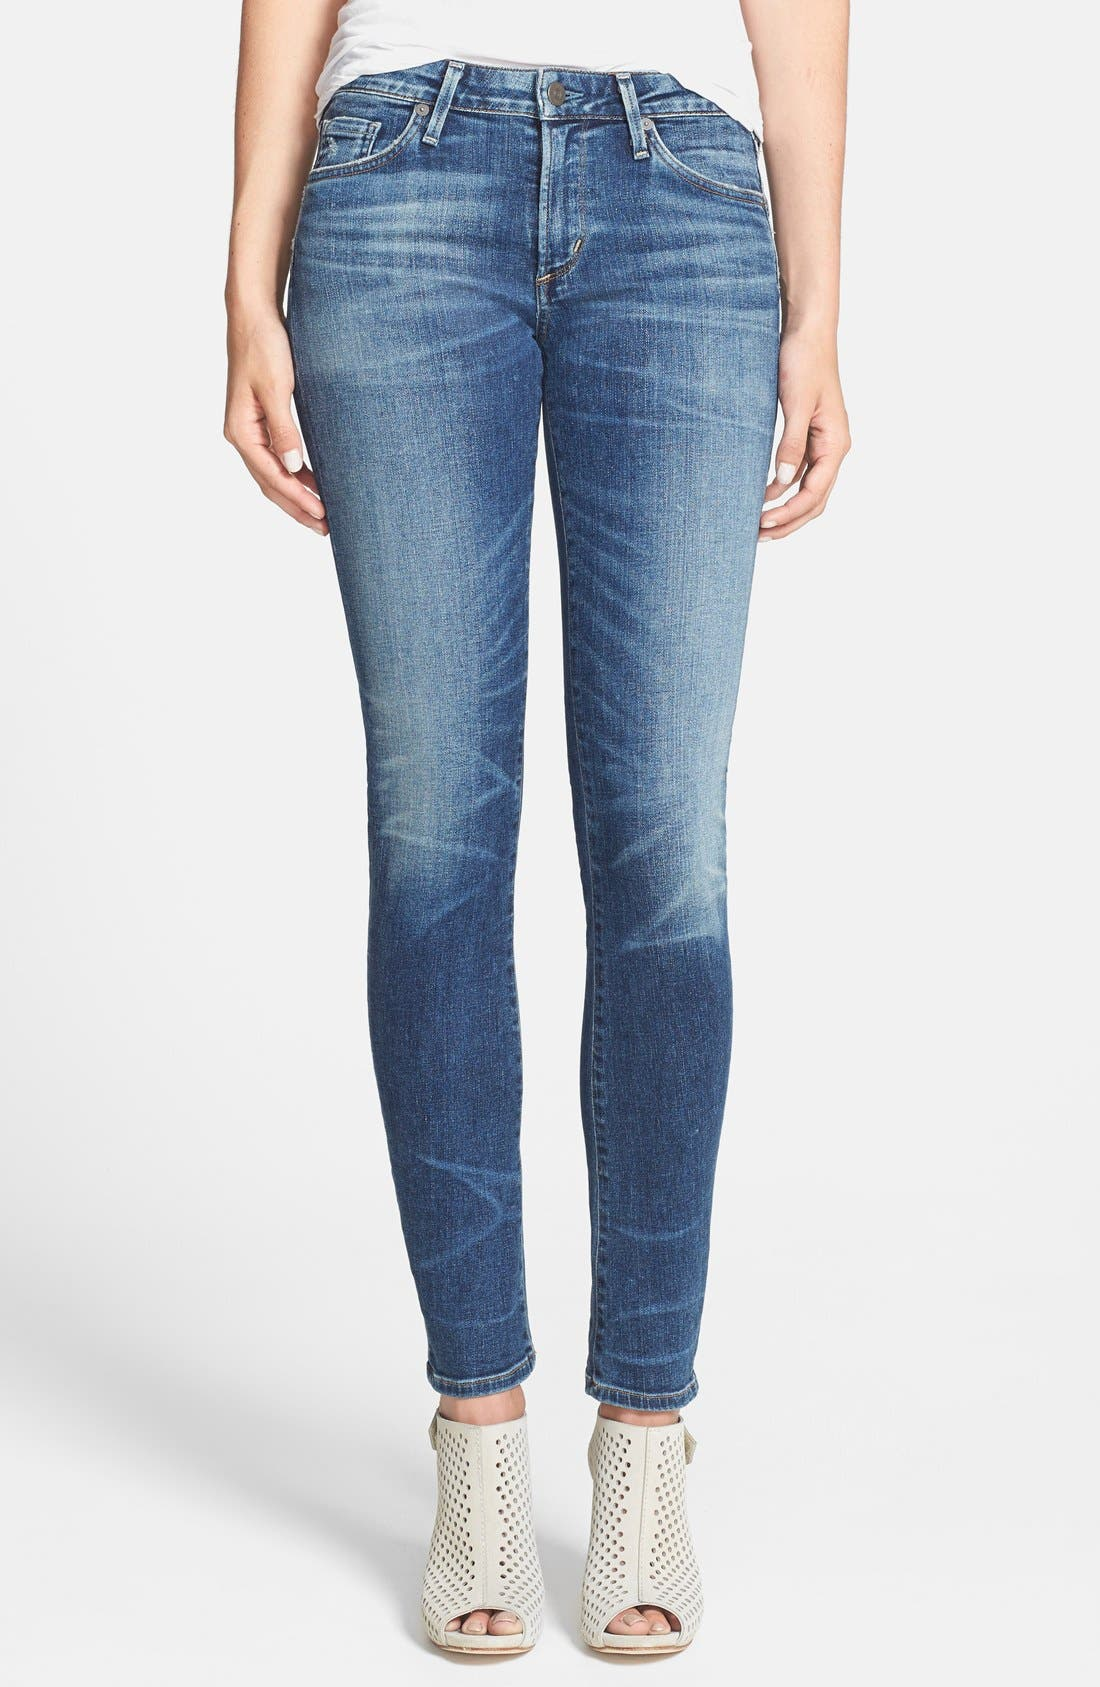 Alternate Image 1 Selected - Citizens of Humanity 'Arielle' Ultra Skinny Jeans (Weekend)